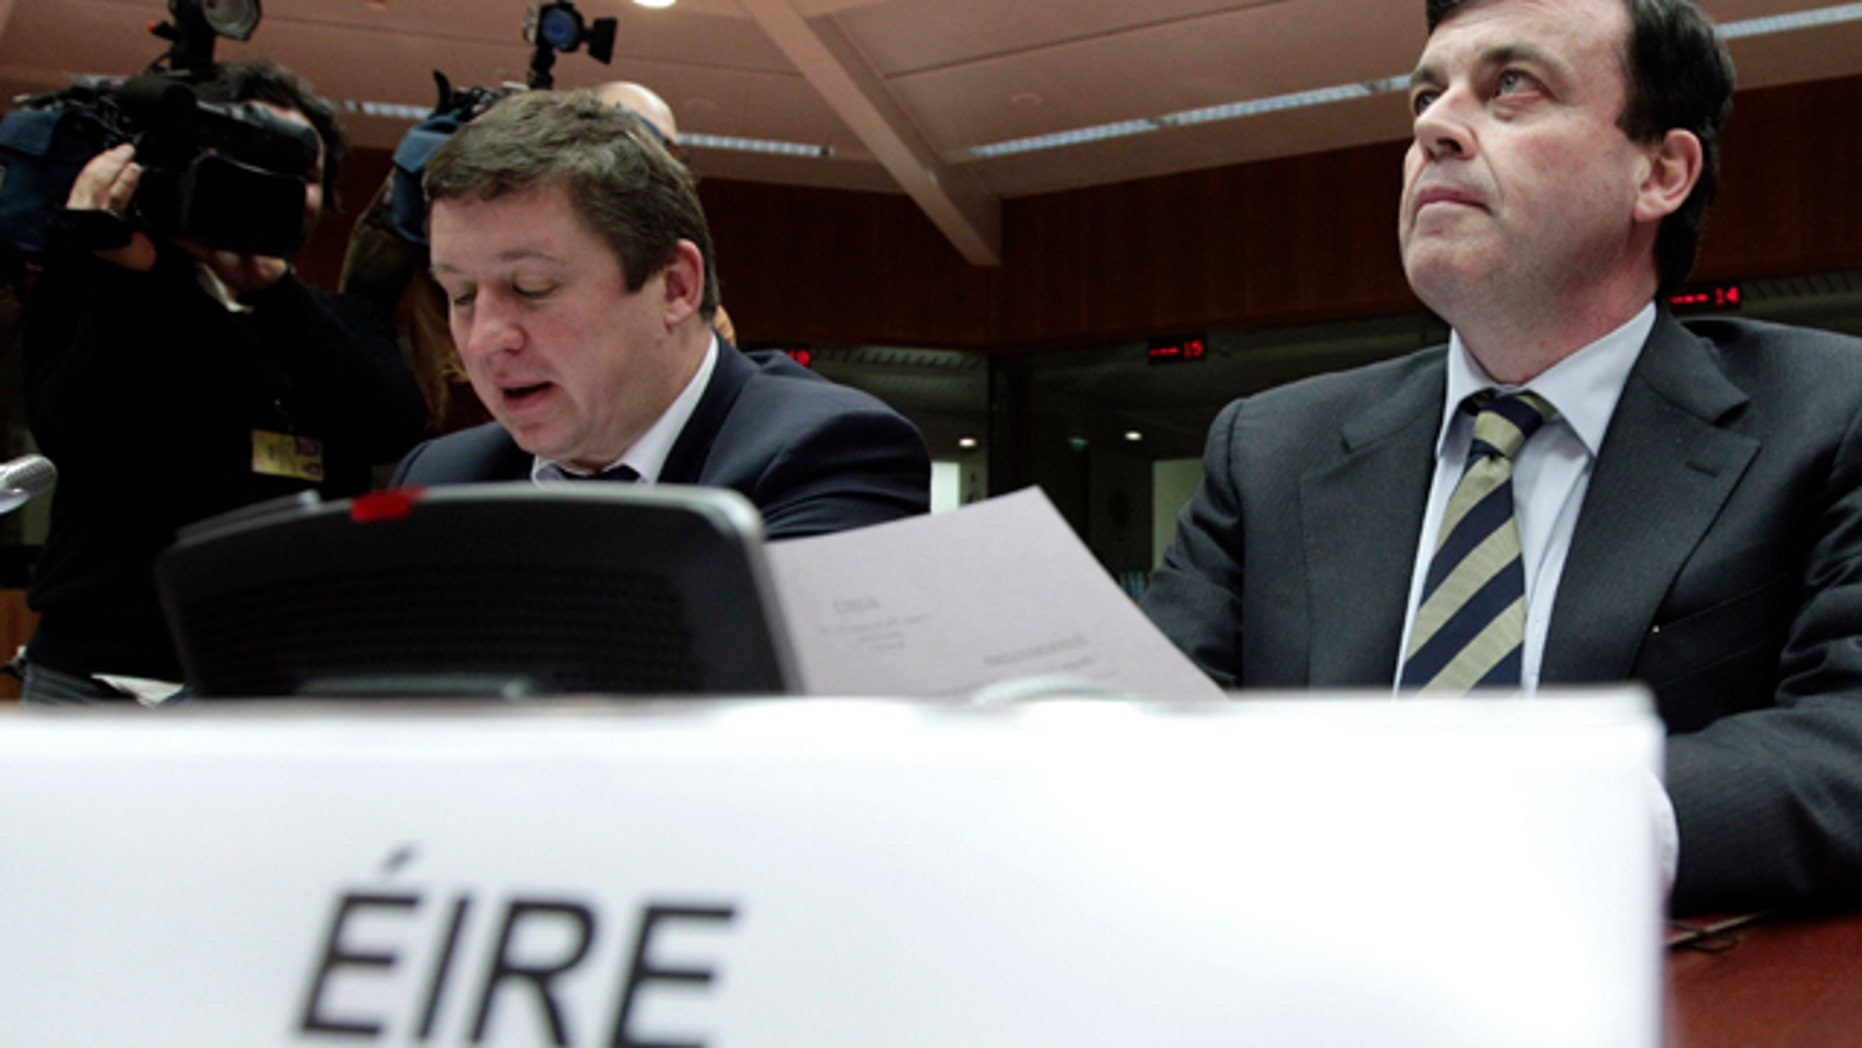 Nov. 28: Irish Finance Minister Brian Lenihan, right, waits for the start of a round table meeting of EU finance ministers at the EU Council building in Brussels. Finance ministers from the eurozone and the EU are met in Brussels Sunday to agree on a financial aid package for Ireland. (AP)